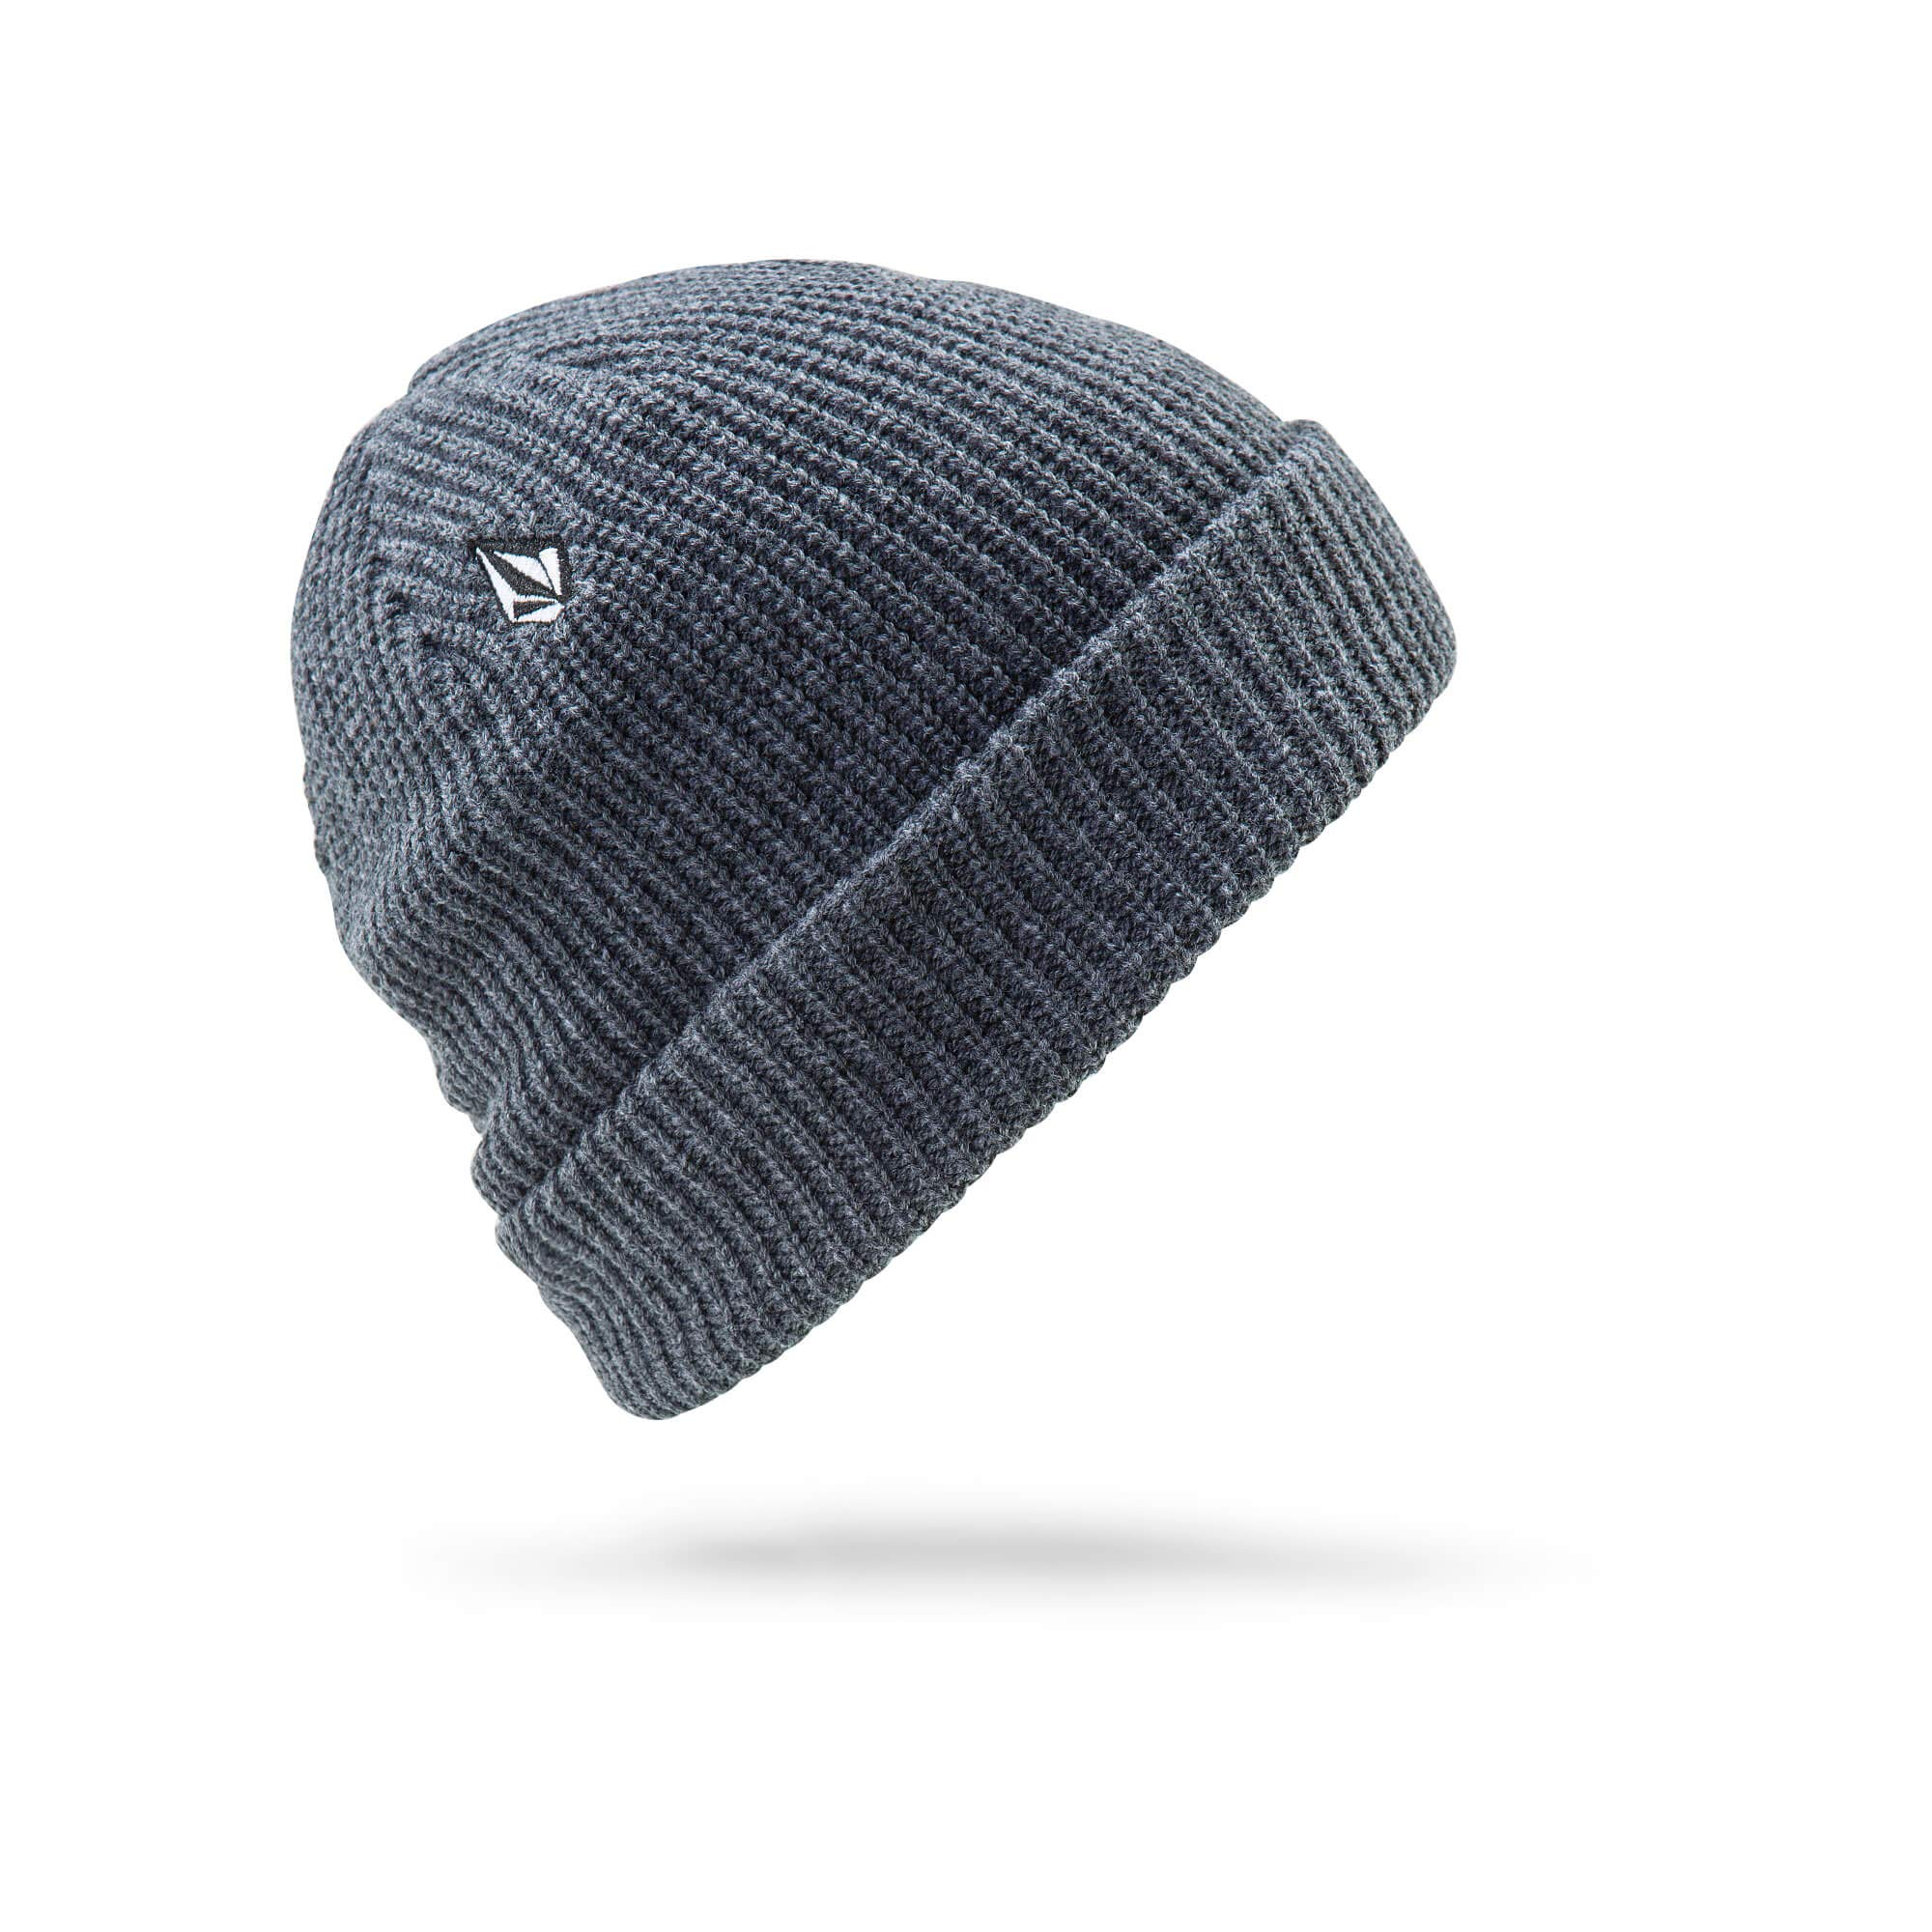 Volcom Young Men's Full Stone Beanie Hat, Charcoal Heather, ONE Size